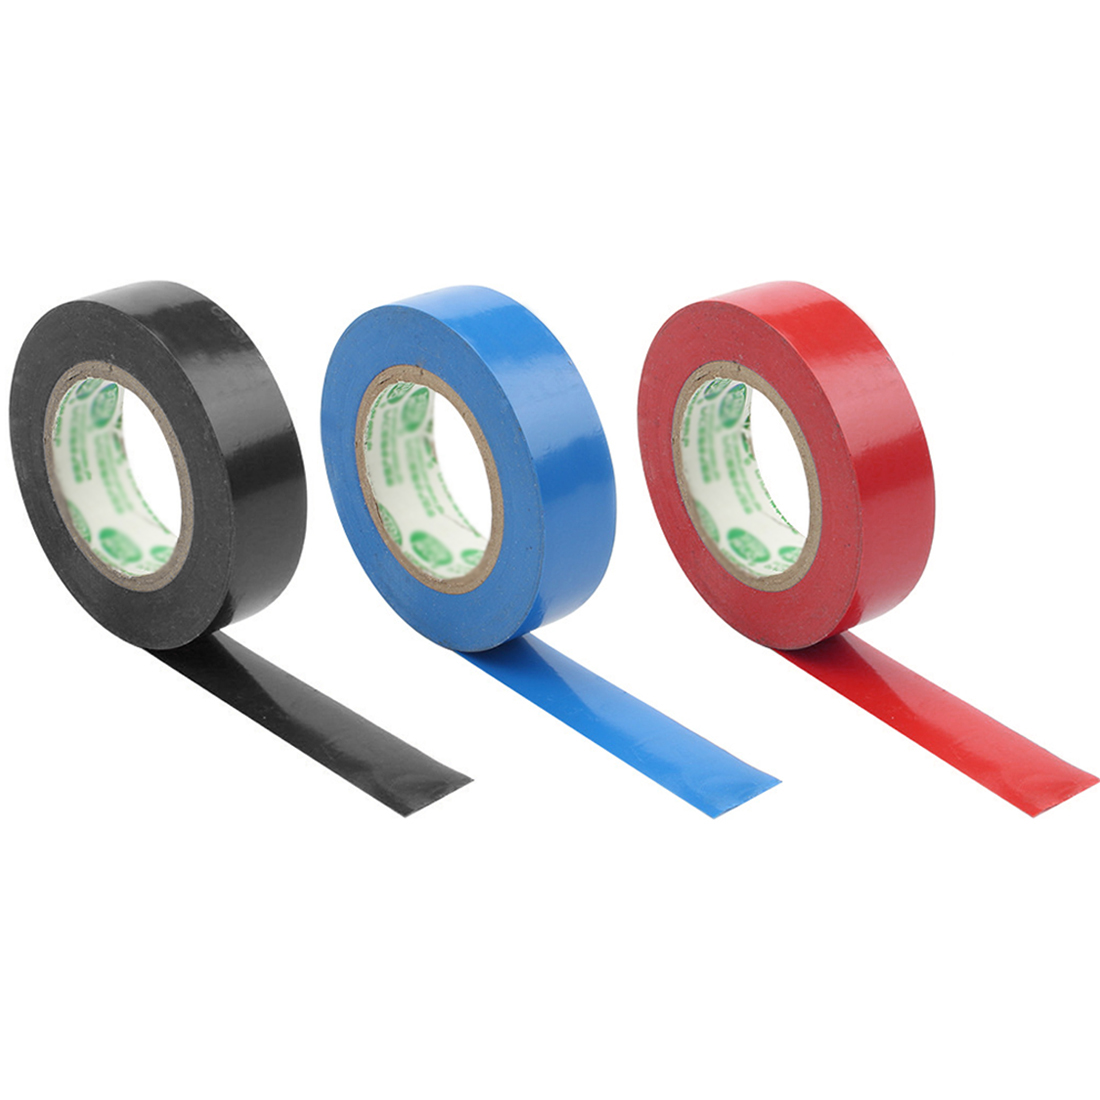 Electrical Tape 10/15 Meters 3 Color Export All Over The World Electrical Insulating Tape Waterproof Tape